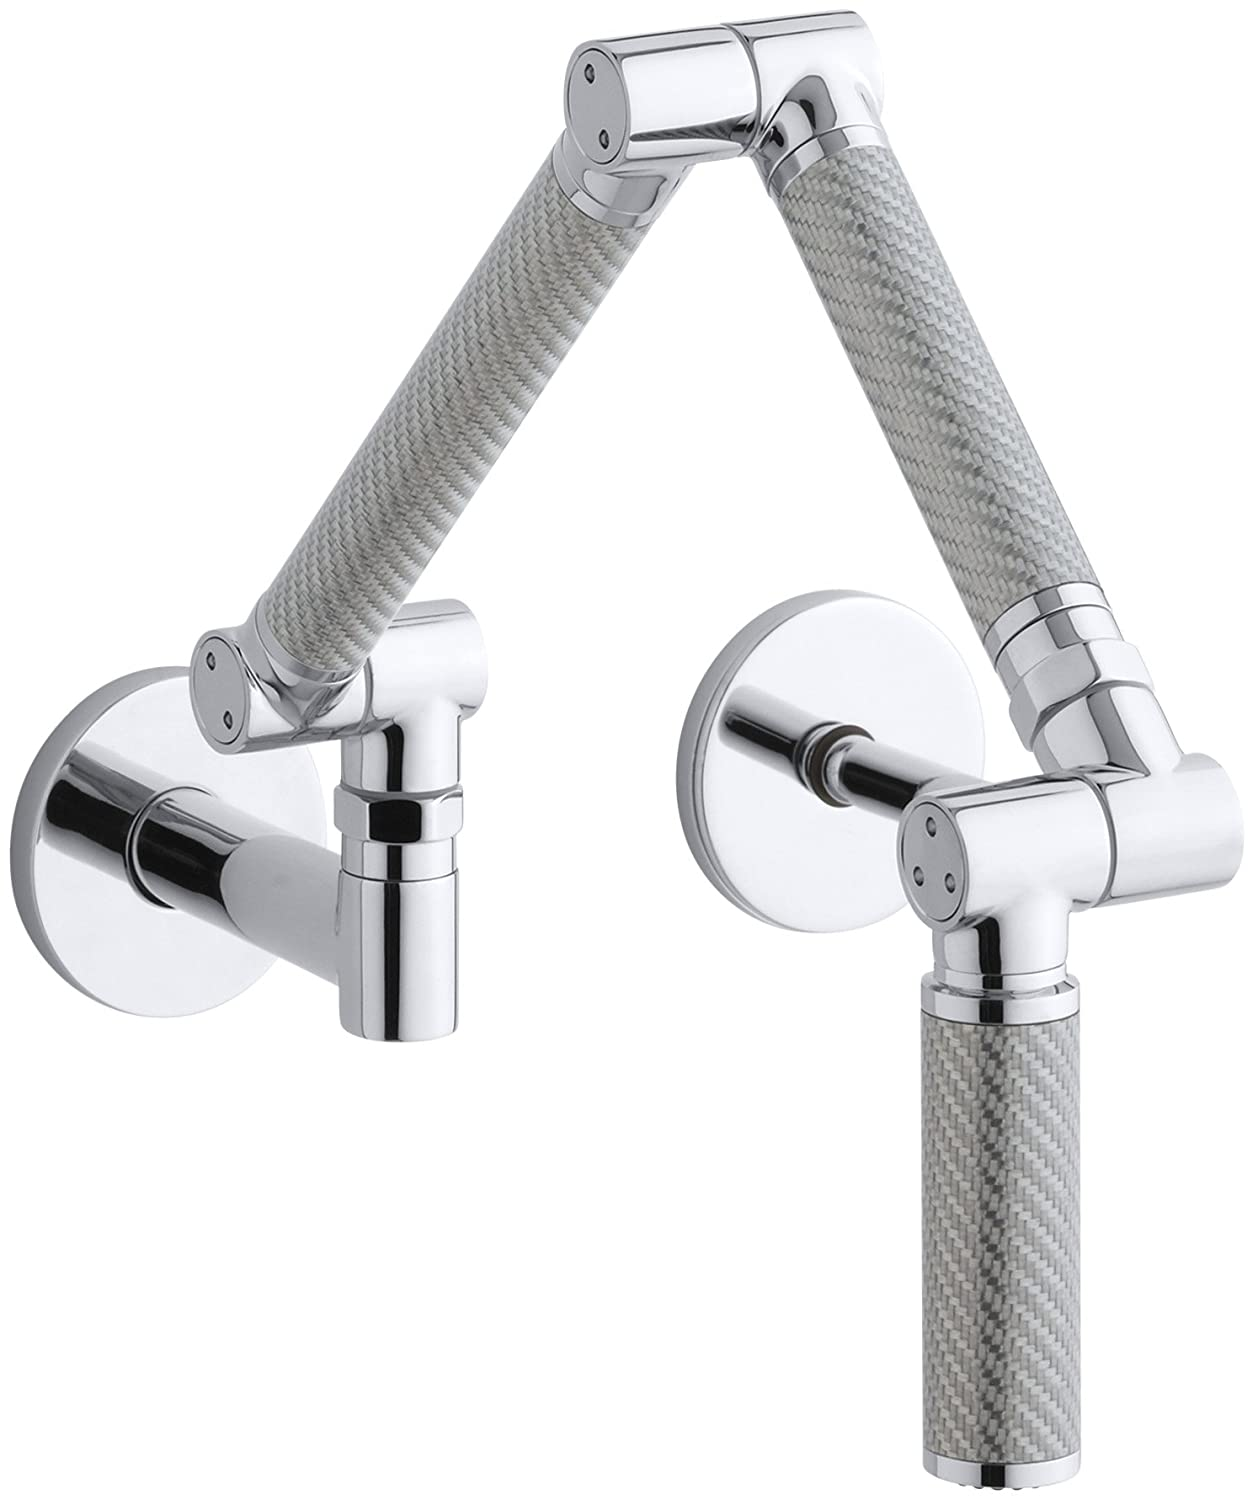 Genial KOHLER K 6228 C11 CP Karbon Wall Mount Kitchen Faucet With Silver Tube,  Polished Chrome   Touch On Kitchen Sink Faucets   Amazon.com